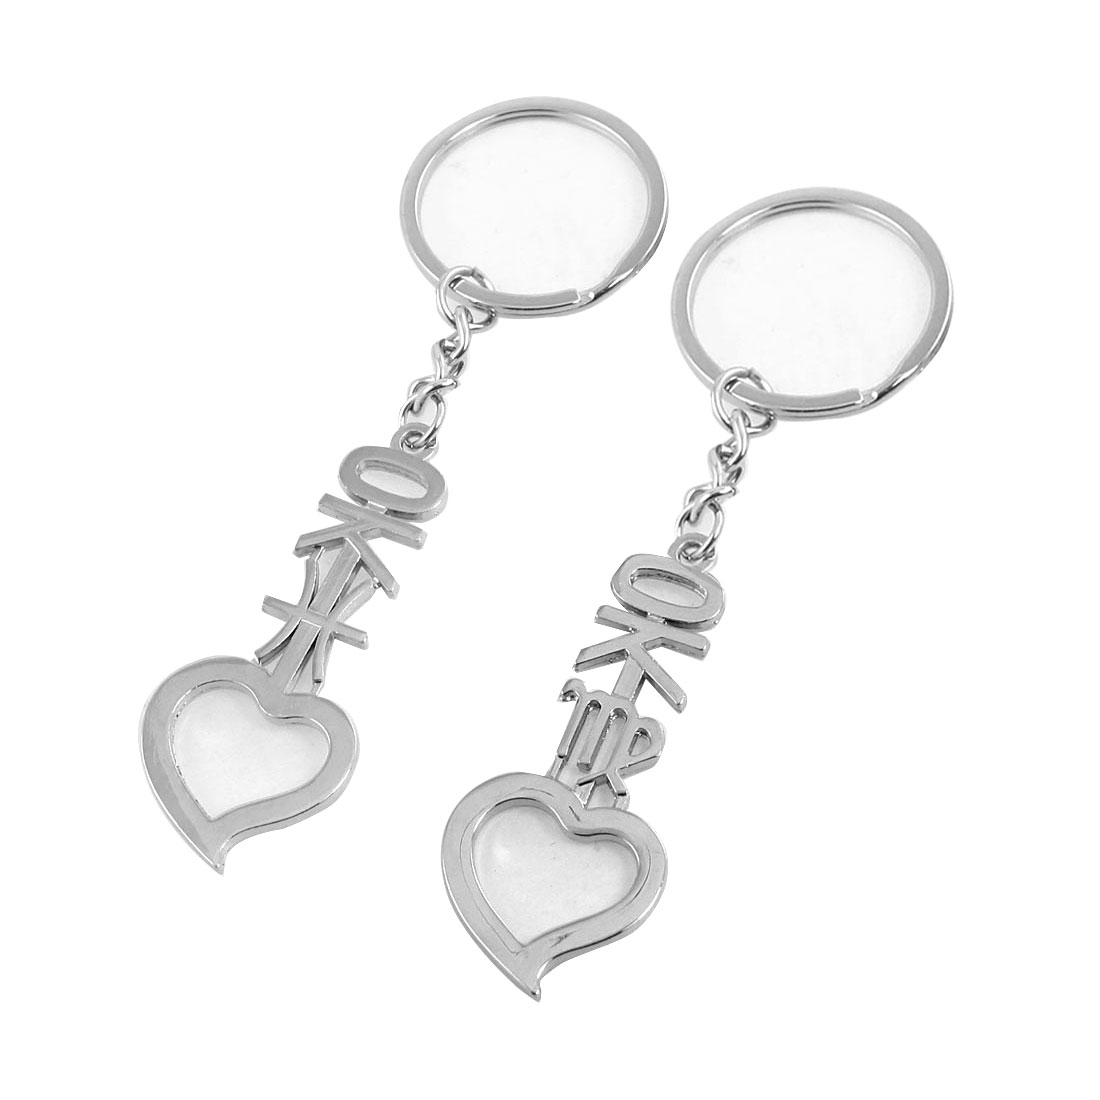 I Love You Forever Carved Heart Pendant Silver Tone Metal Keyrings 2 Pcs